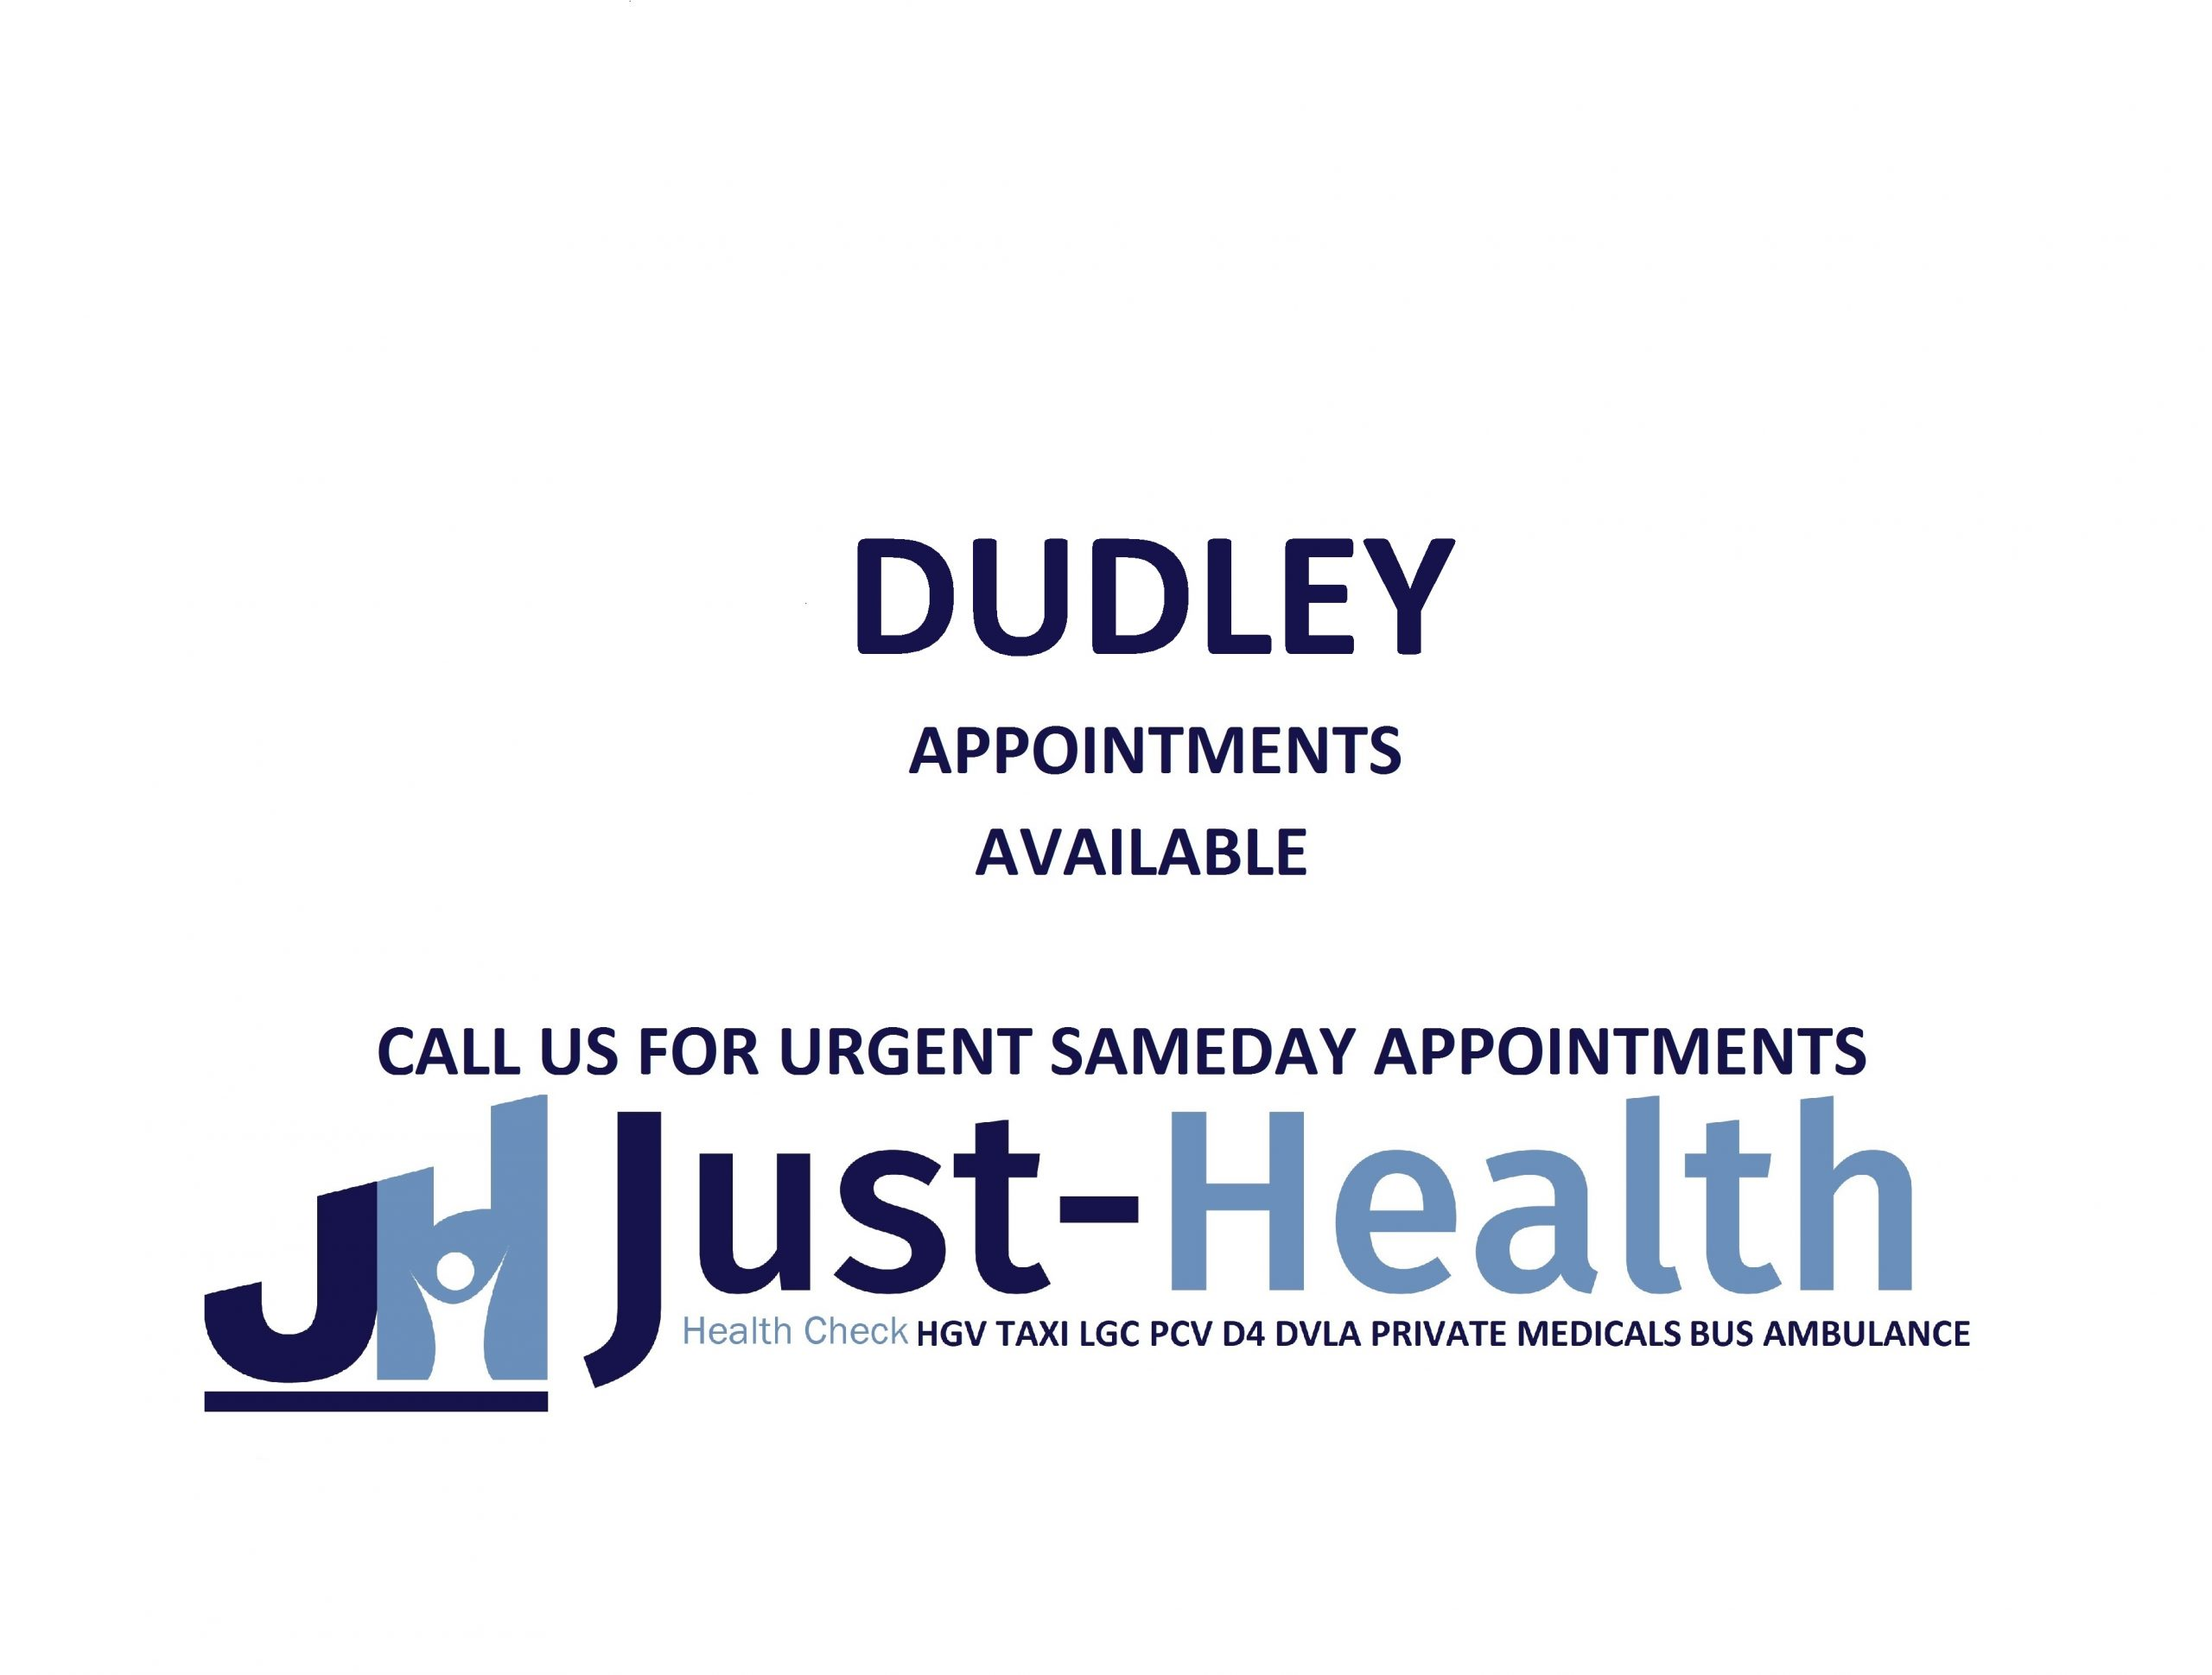 d4 PSV LGV Taxi Pcv HGV medical just health clinic dudley birmingham